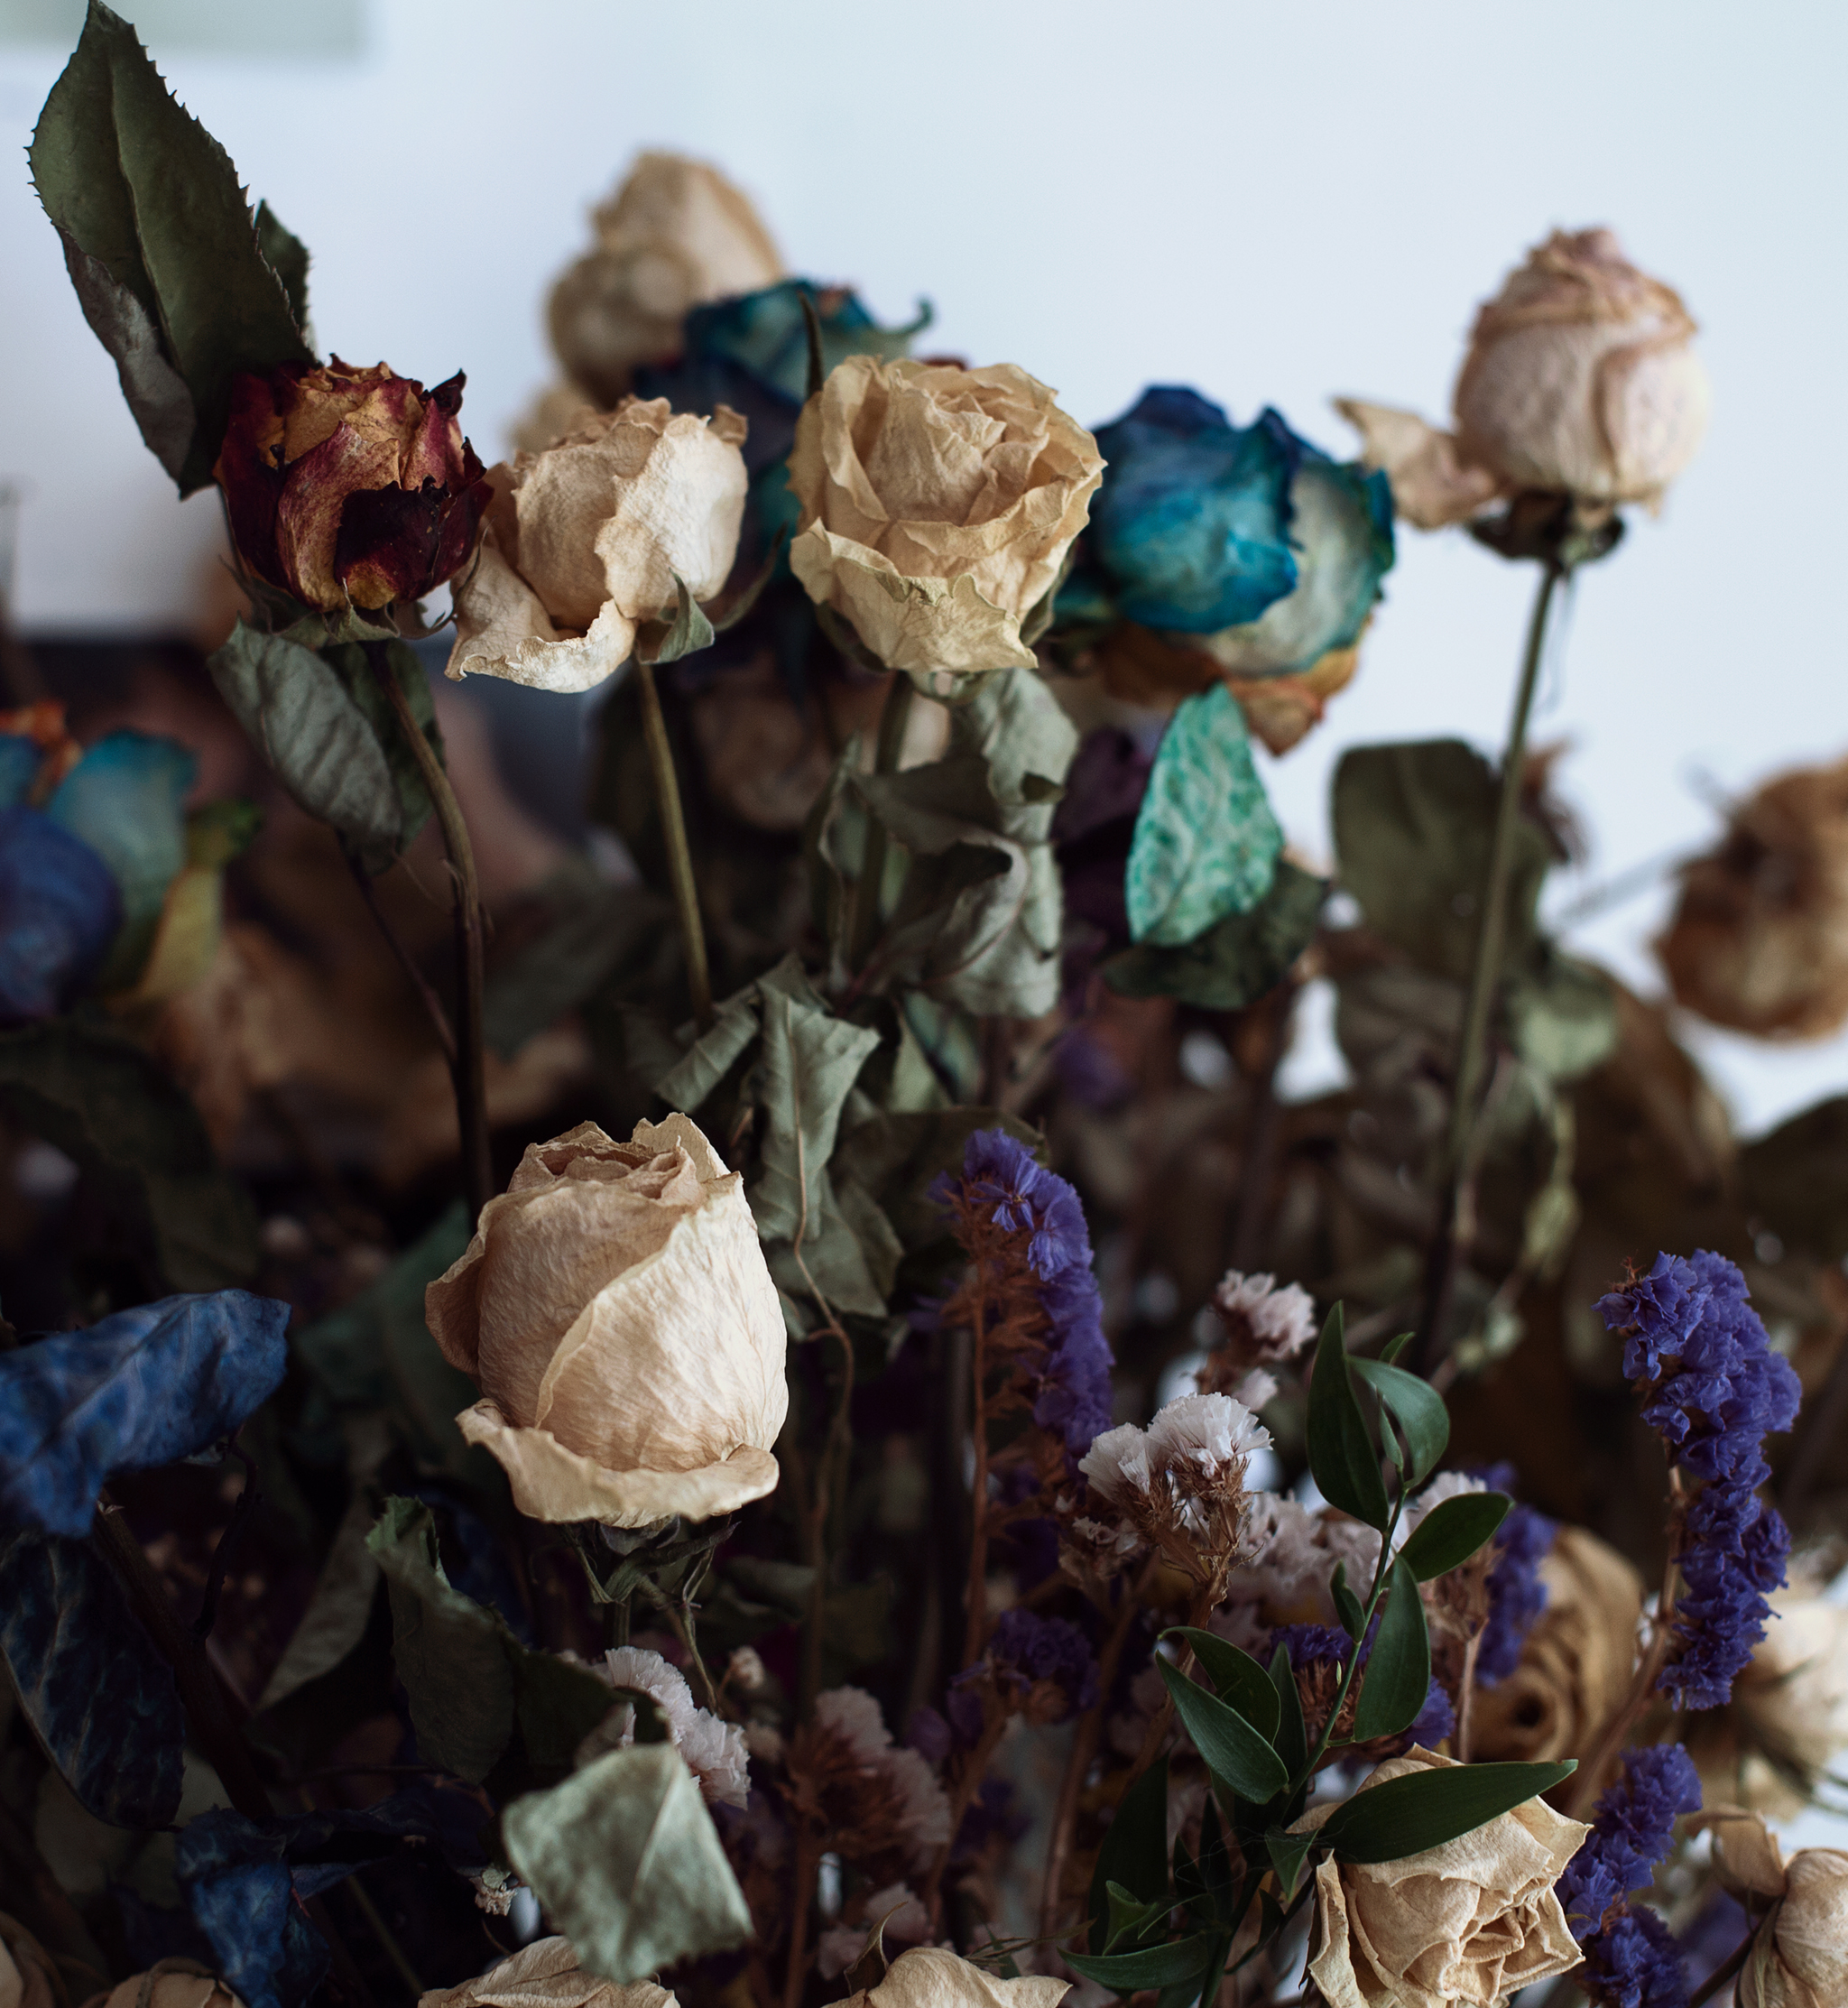 s_dried-flowers-roses-flora-age-dusky-withered.jpg